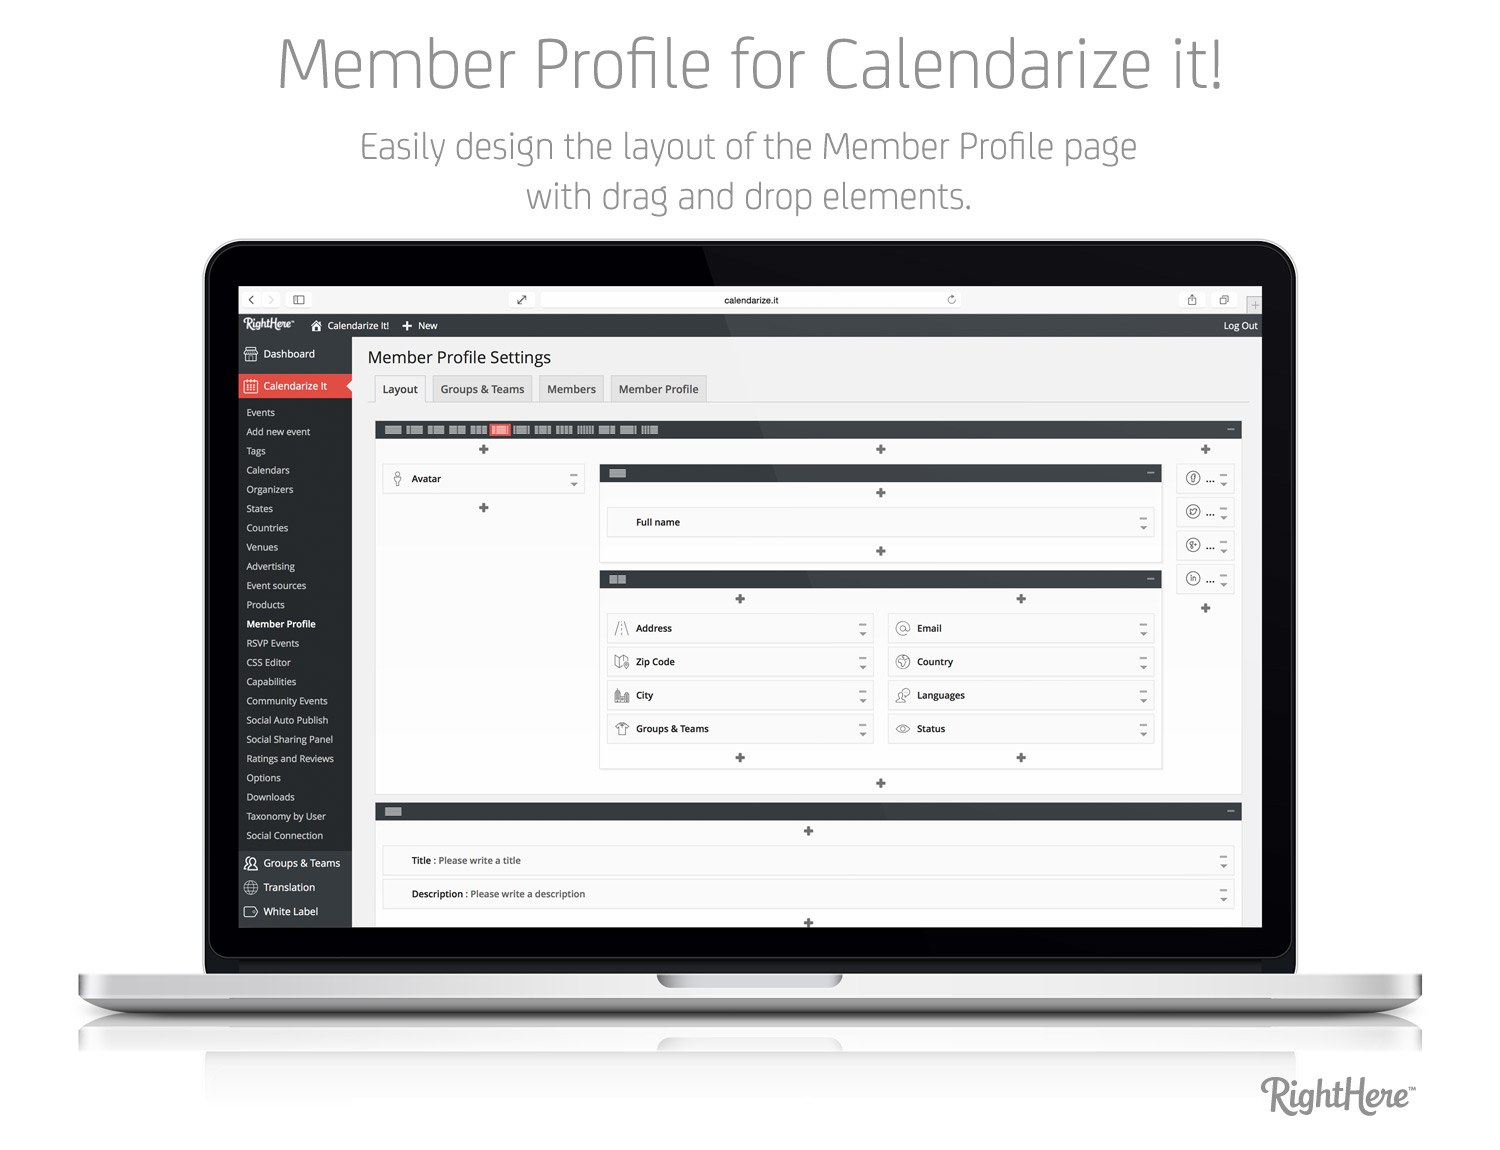 Member Profile for Calendarize it! - Easily design the layout of the Member Profile page with drag and drop elements